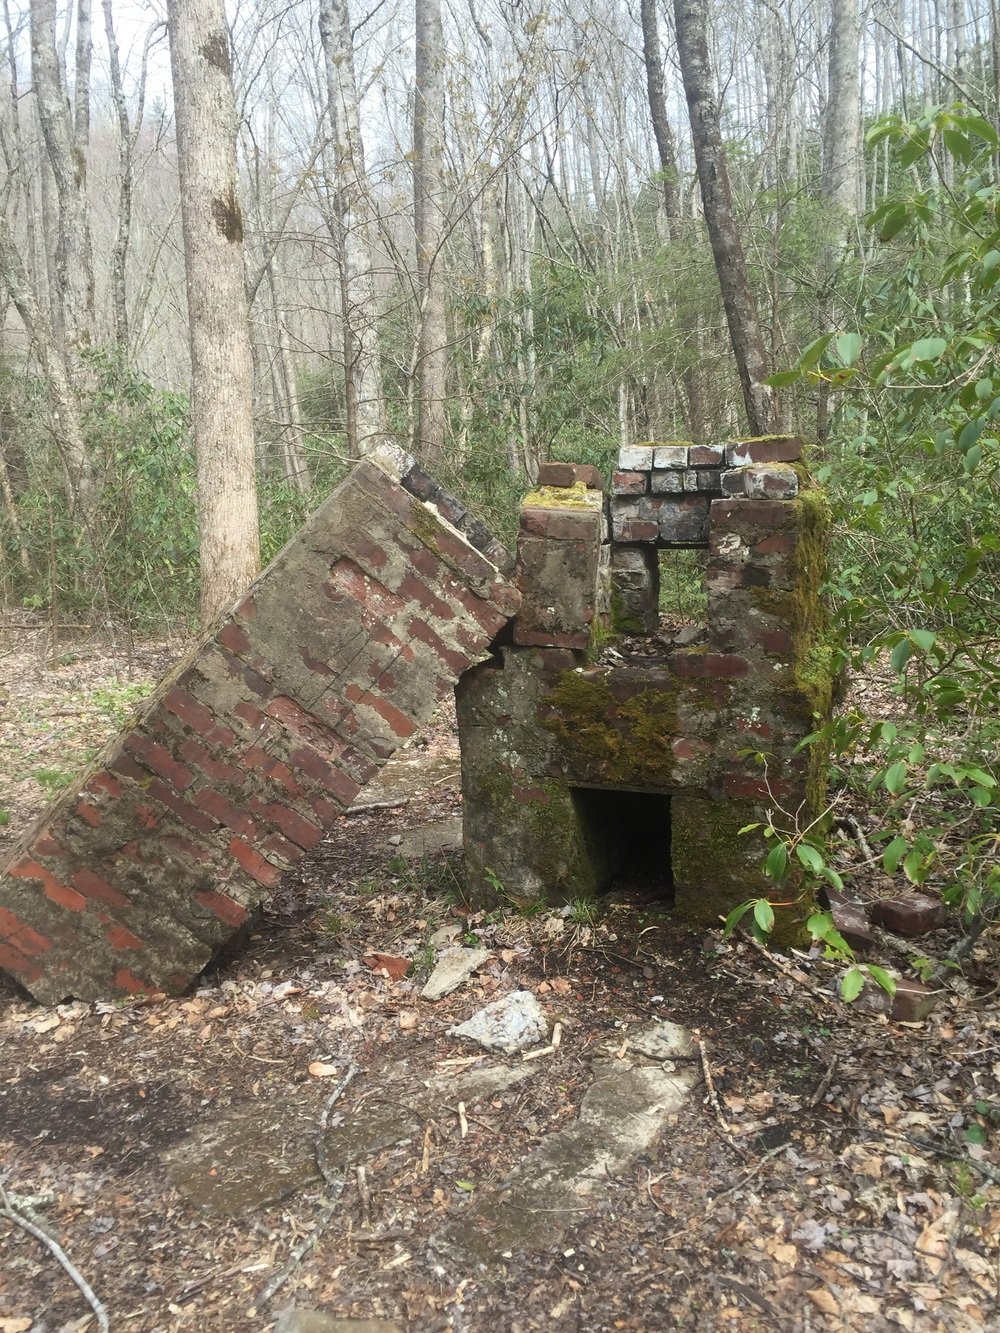 The fallen chimney of the CCC camp.